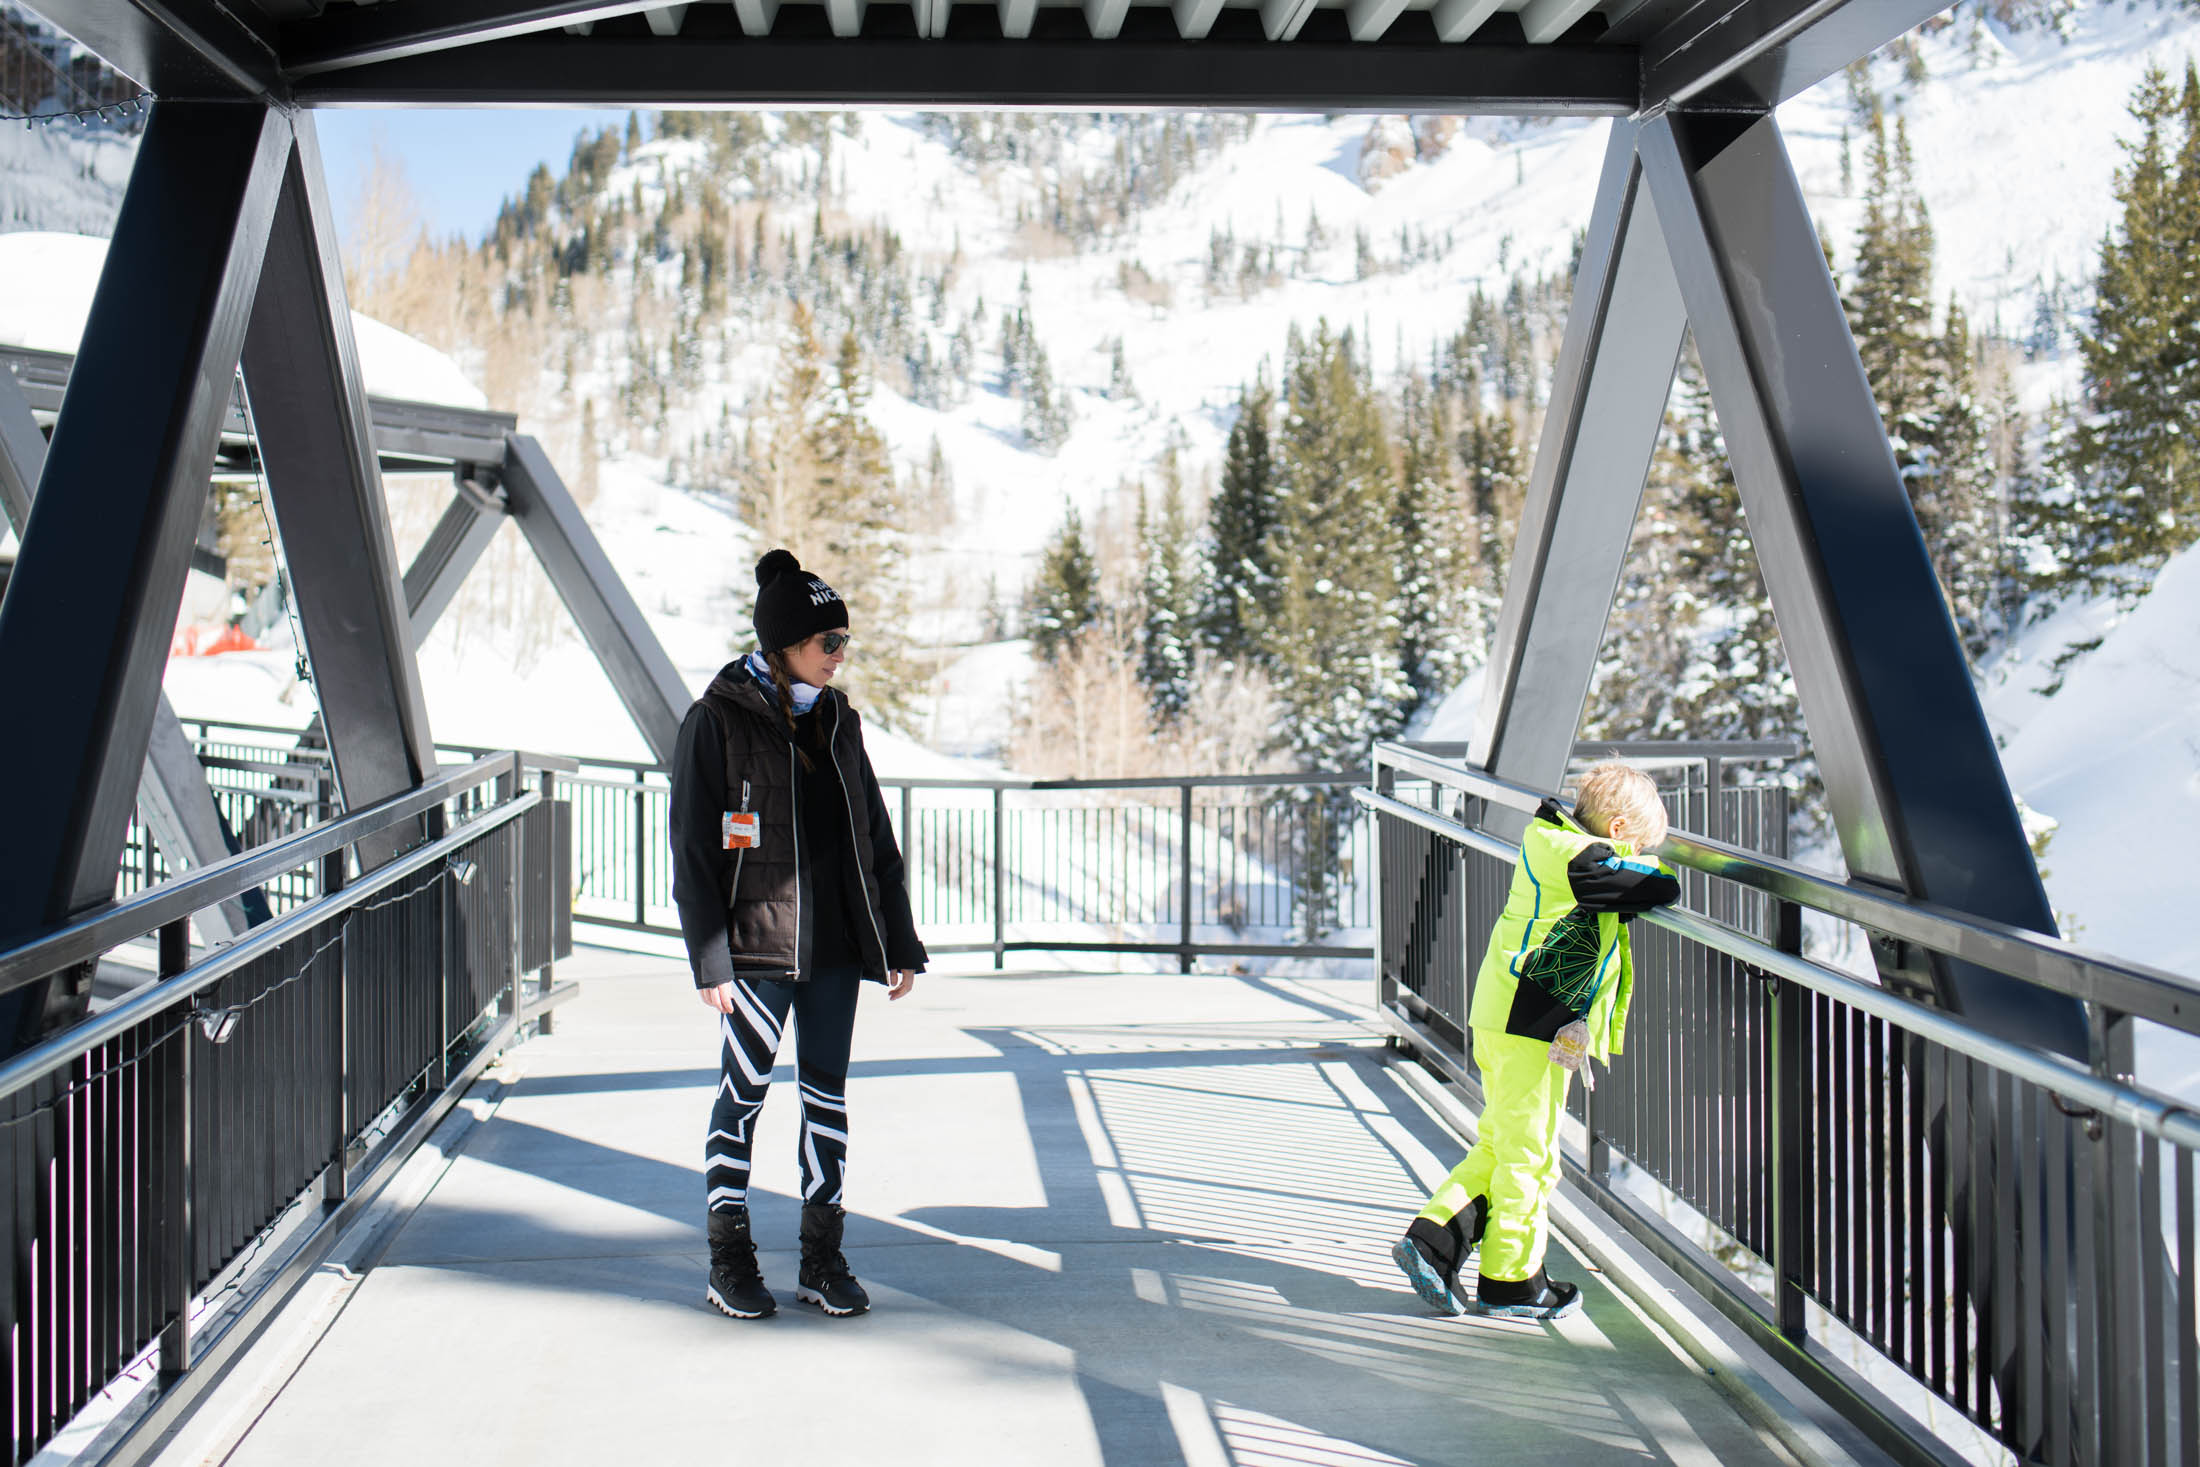 A cute après-ski outfit for gals who really ski revolves around your actual all-day ski gear —cute baselayers, comfy-chic boots & a hat —here are my favs.